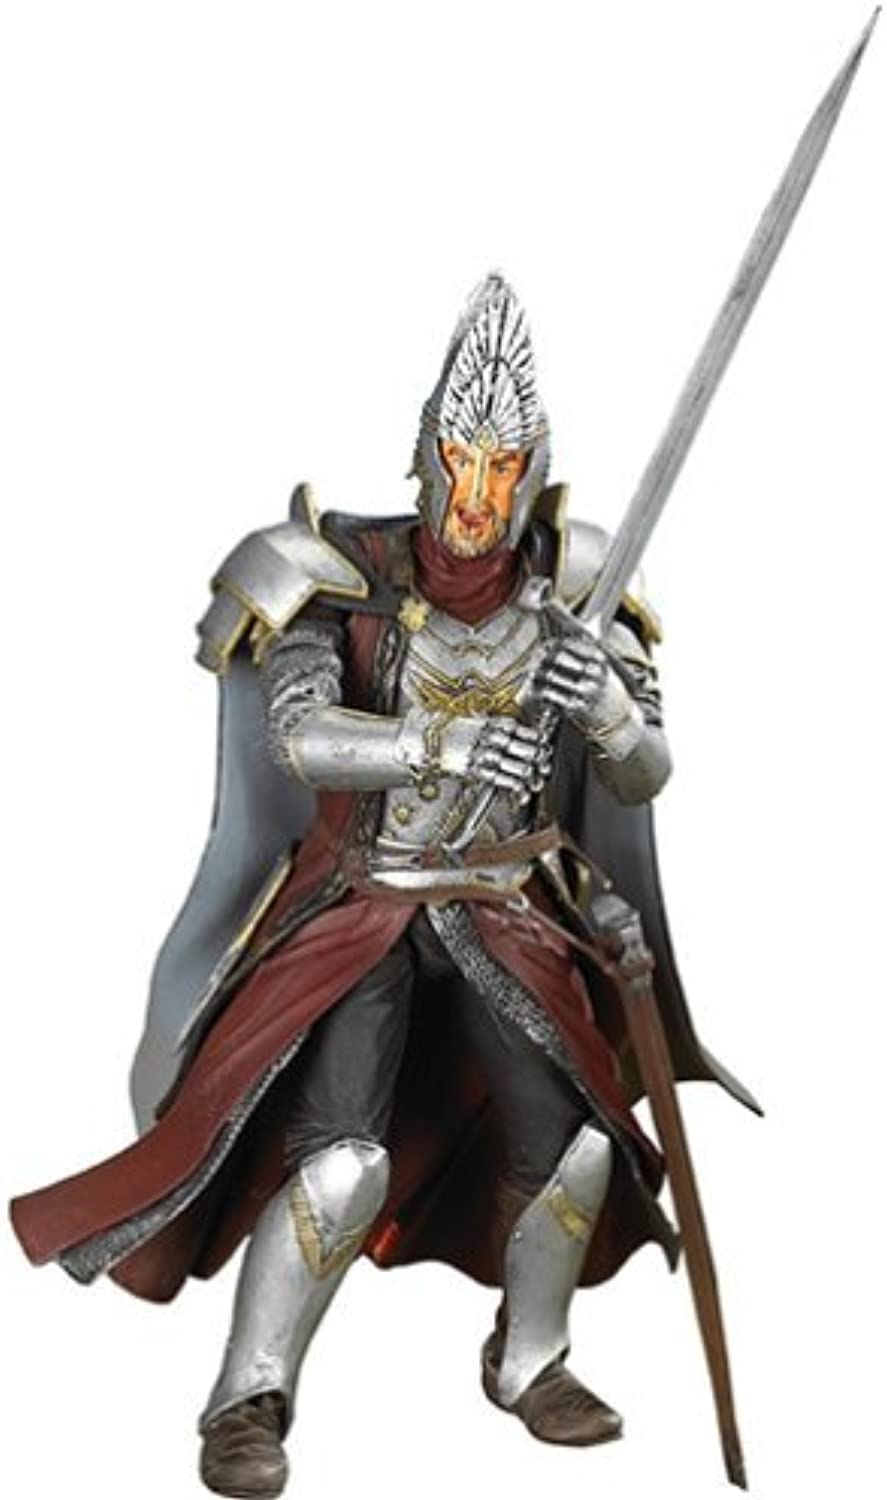 Lord of the Rings Trilogy Fellowship of the Ring Action Figure King Elendil (Sword Slashing) by Toy Biz